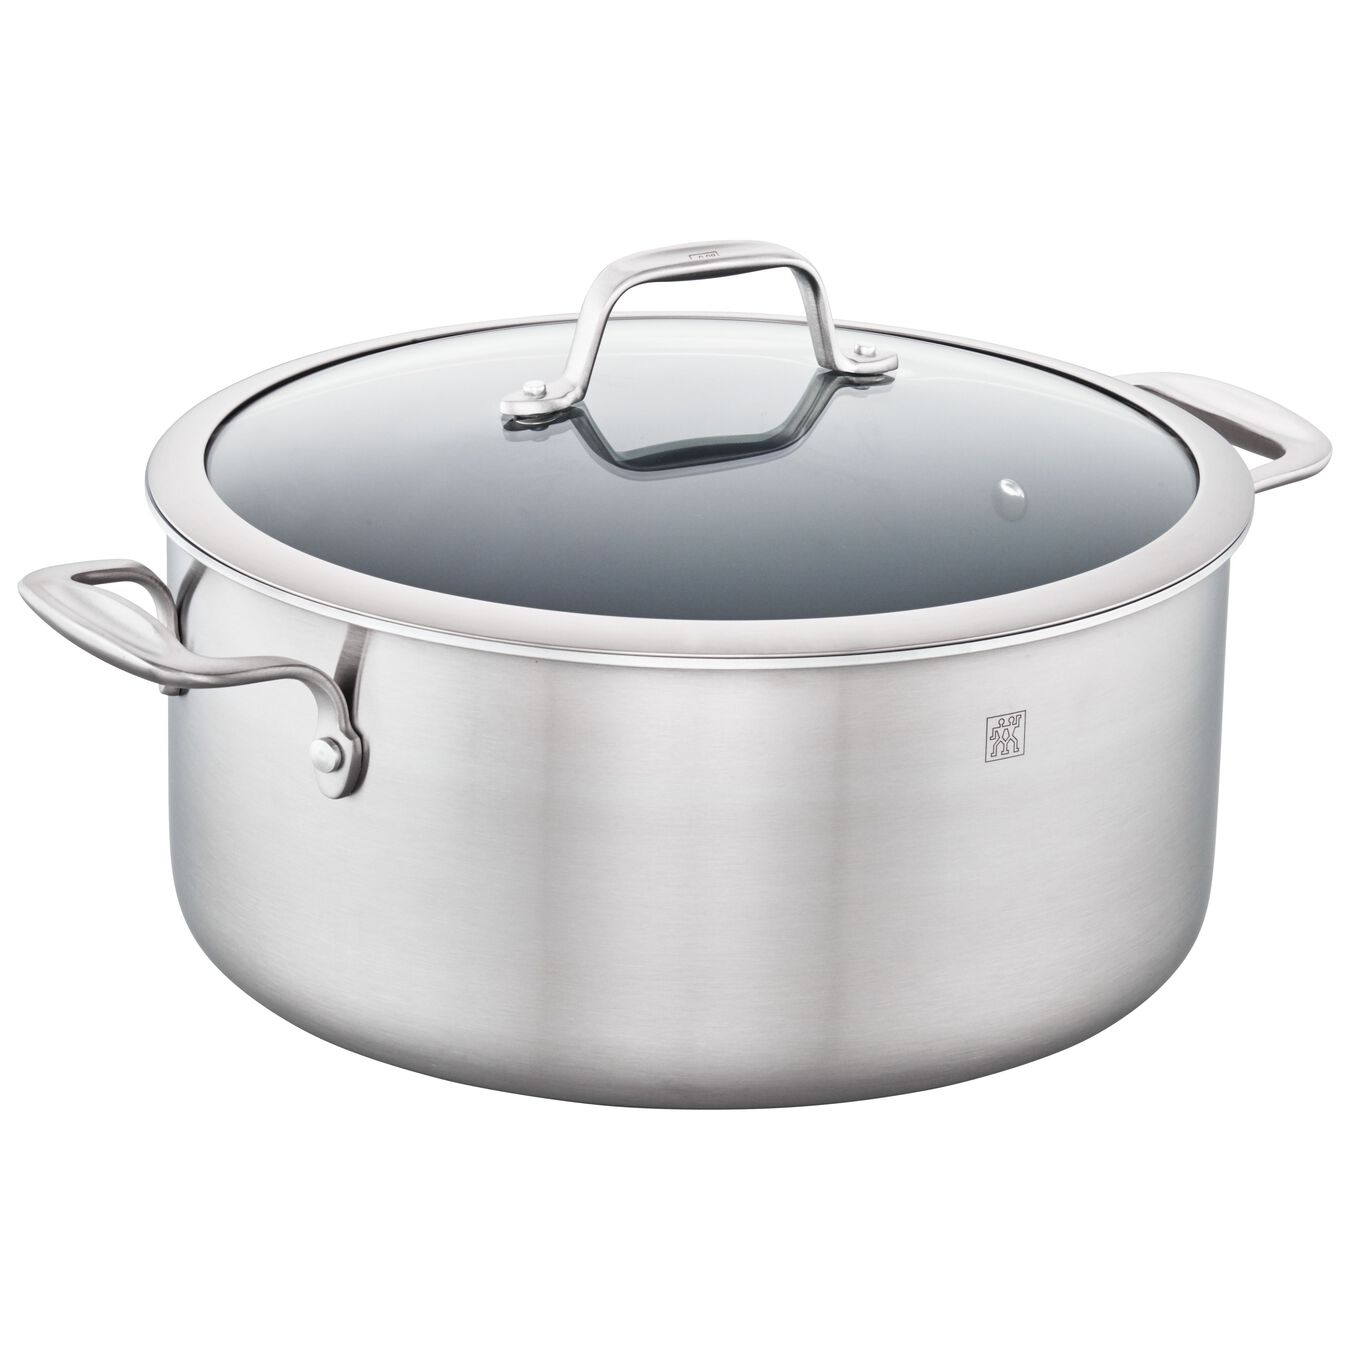 3-ply 8-qt Stainless Steel Ceramic Nonstick Stock Pot,,large 2